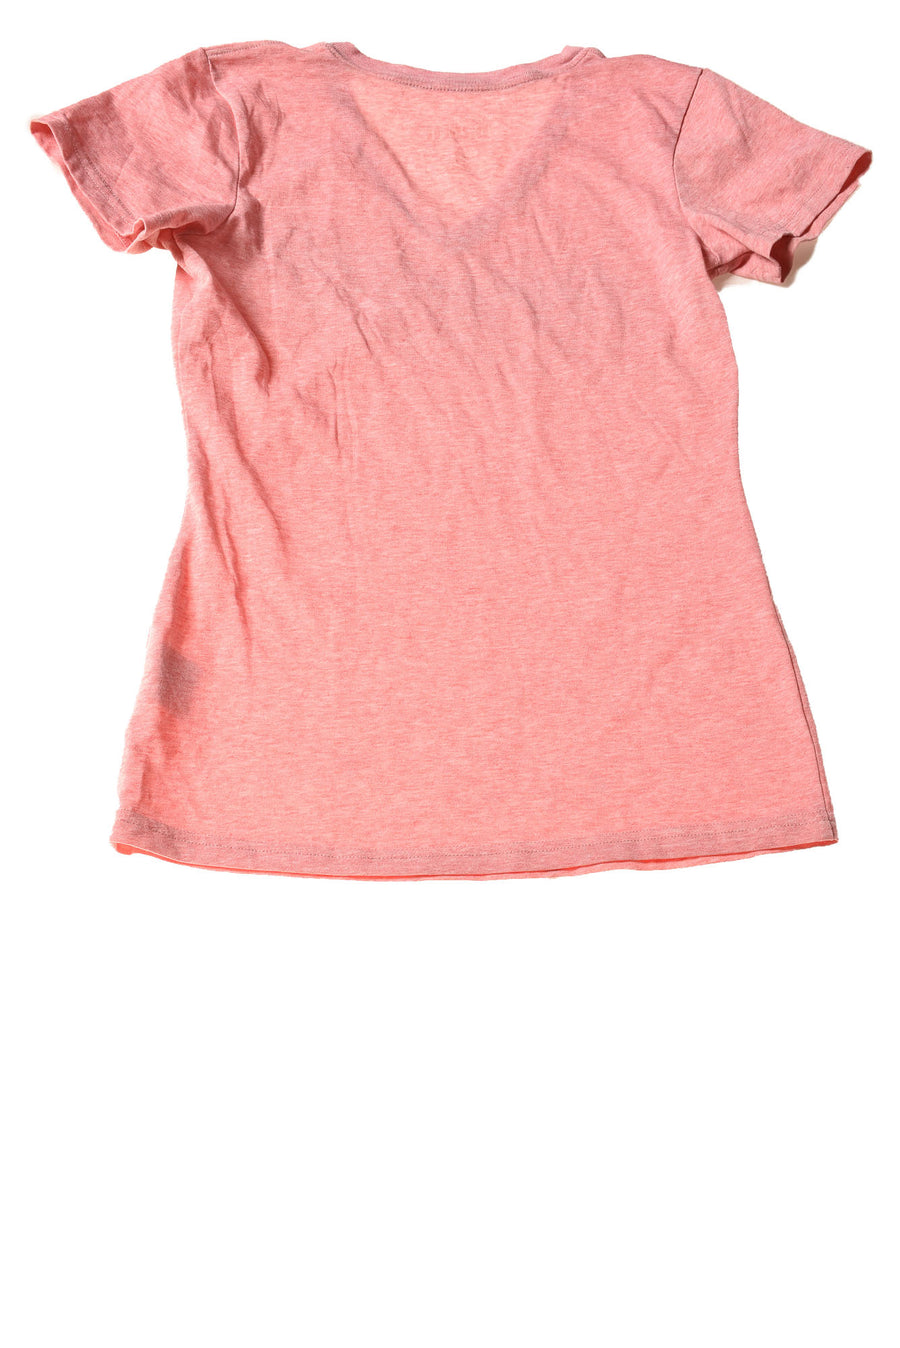 USED Nike Women's Top Small Pink